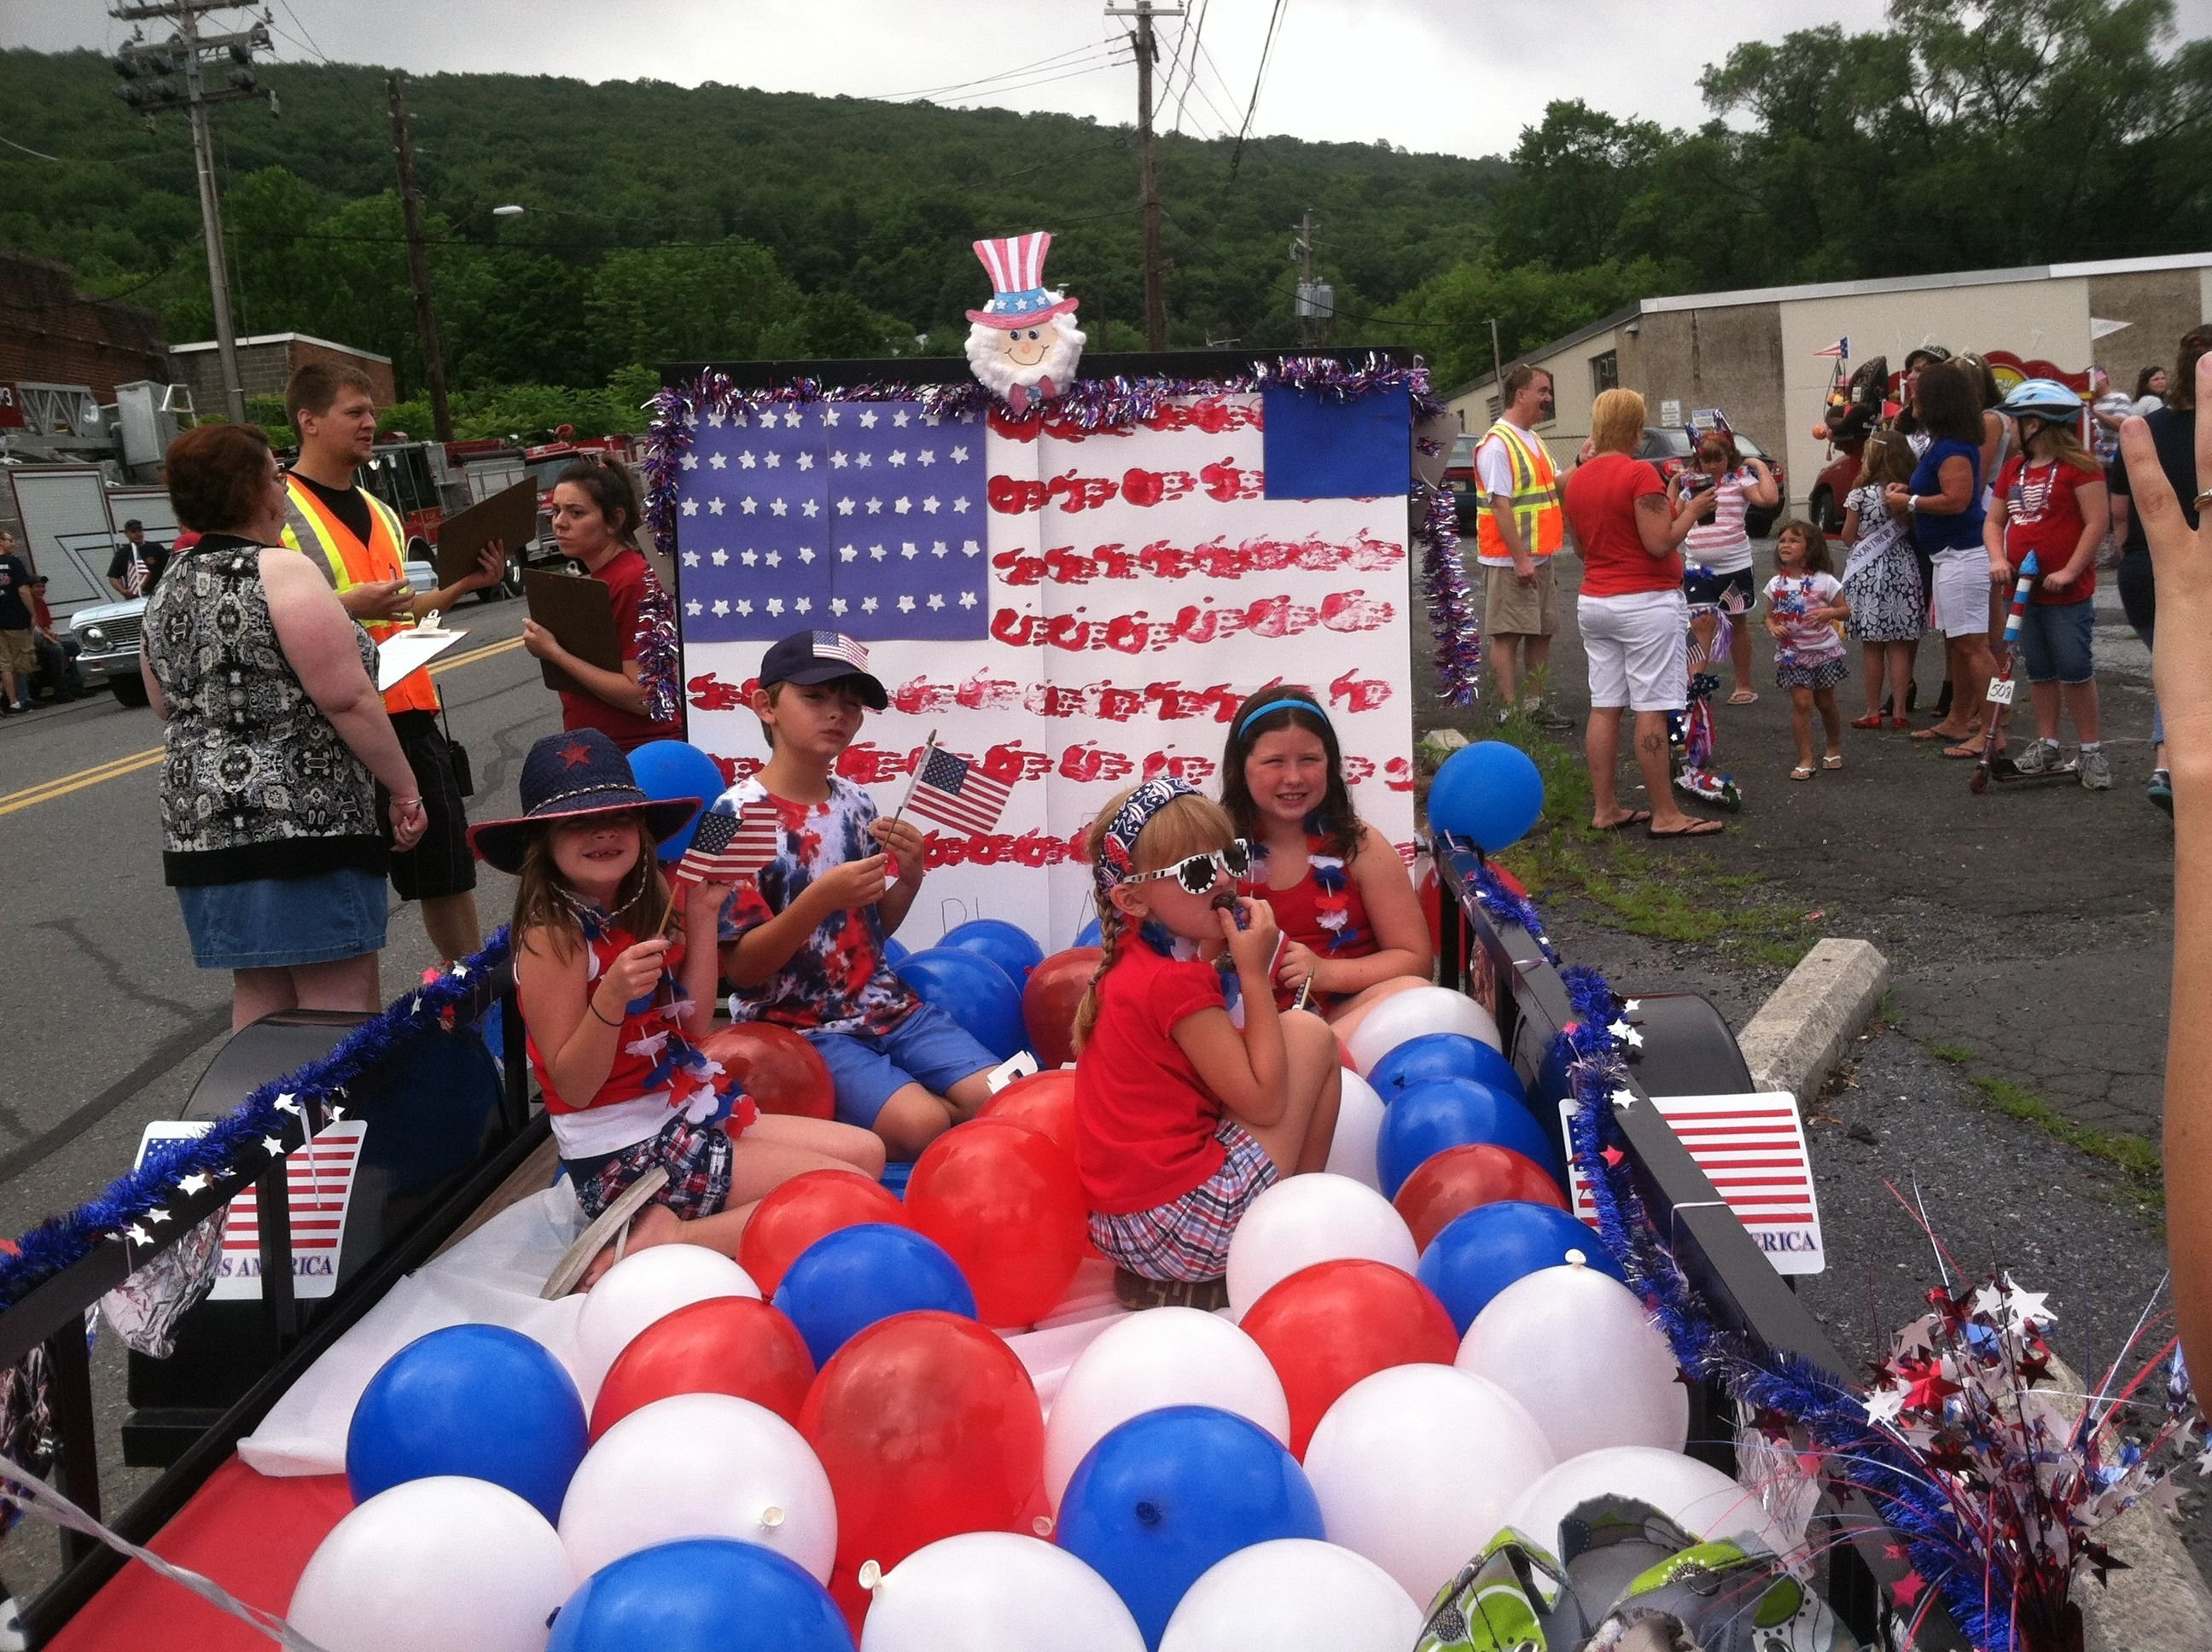 10 Spectacular Fourth Of July Float Ideas 2013 4th of july parade float 2nd place win summer patriotic 3 2021